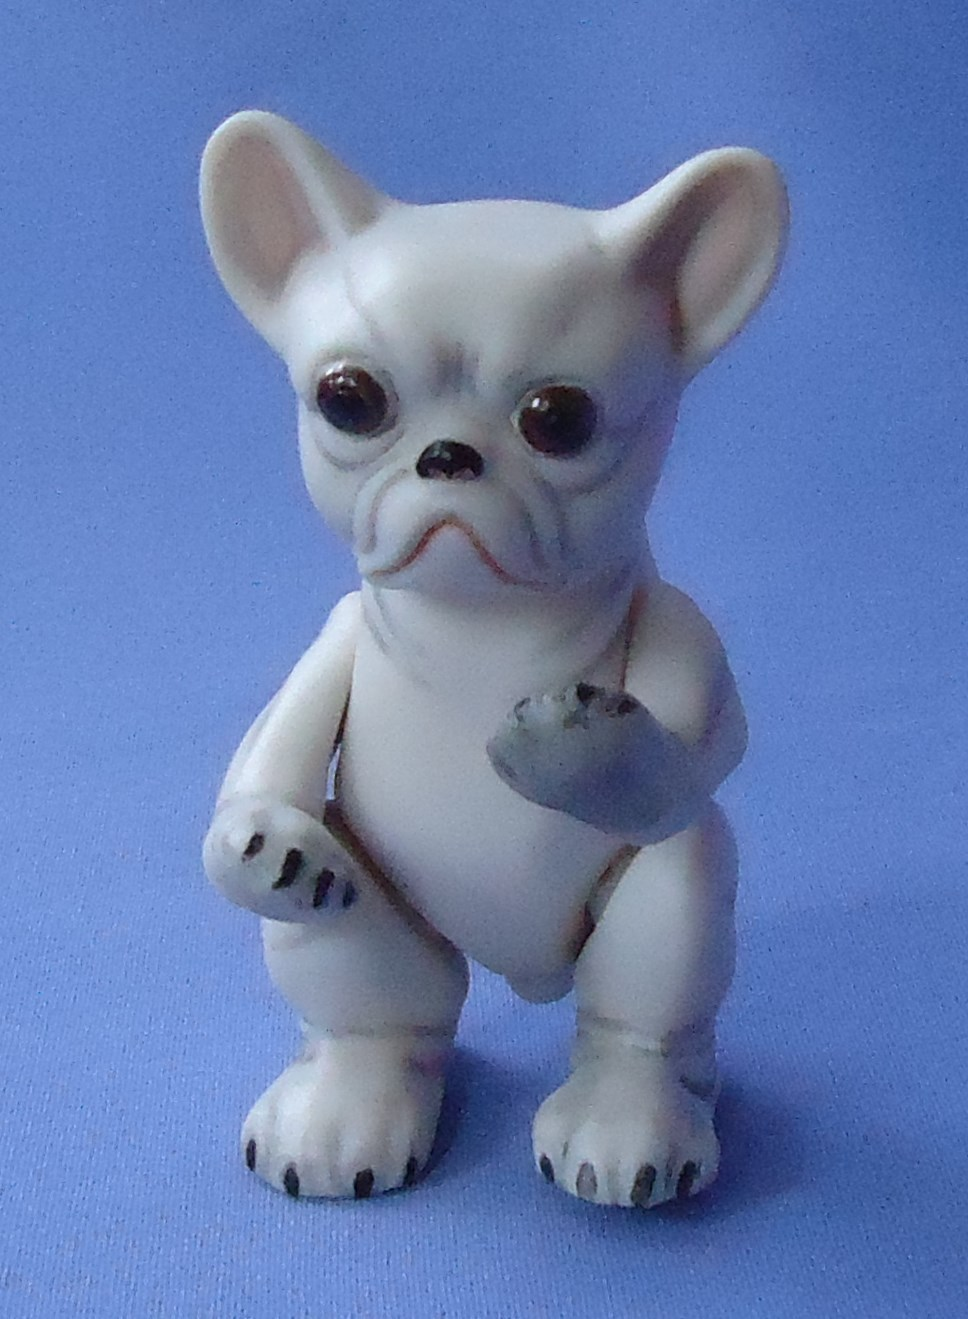 1975 French bulldog by Berdine Wyffles